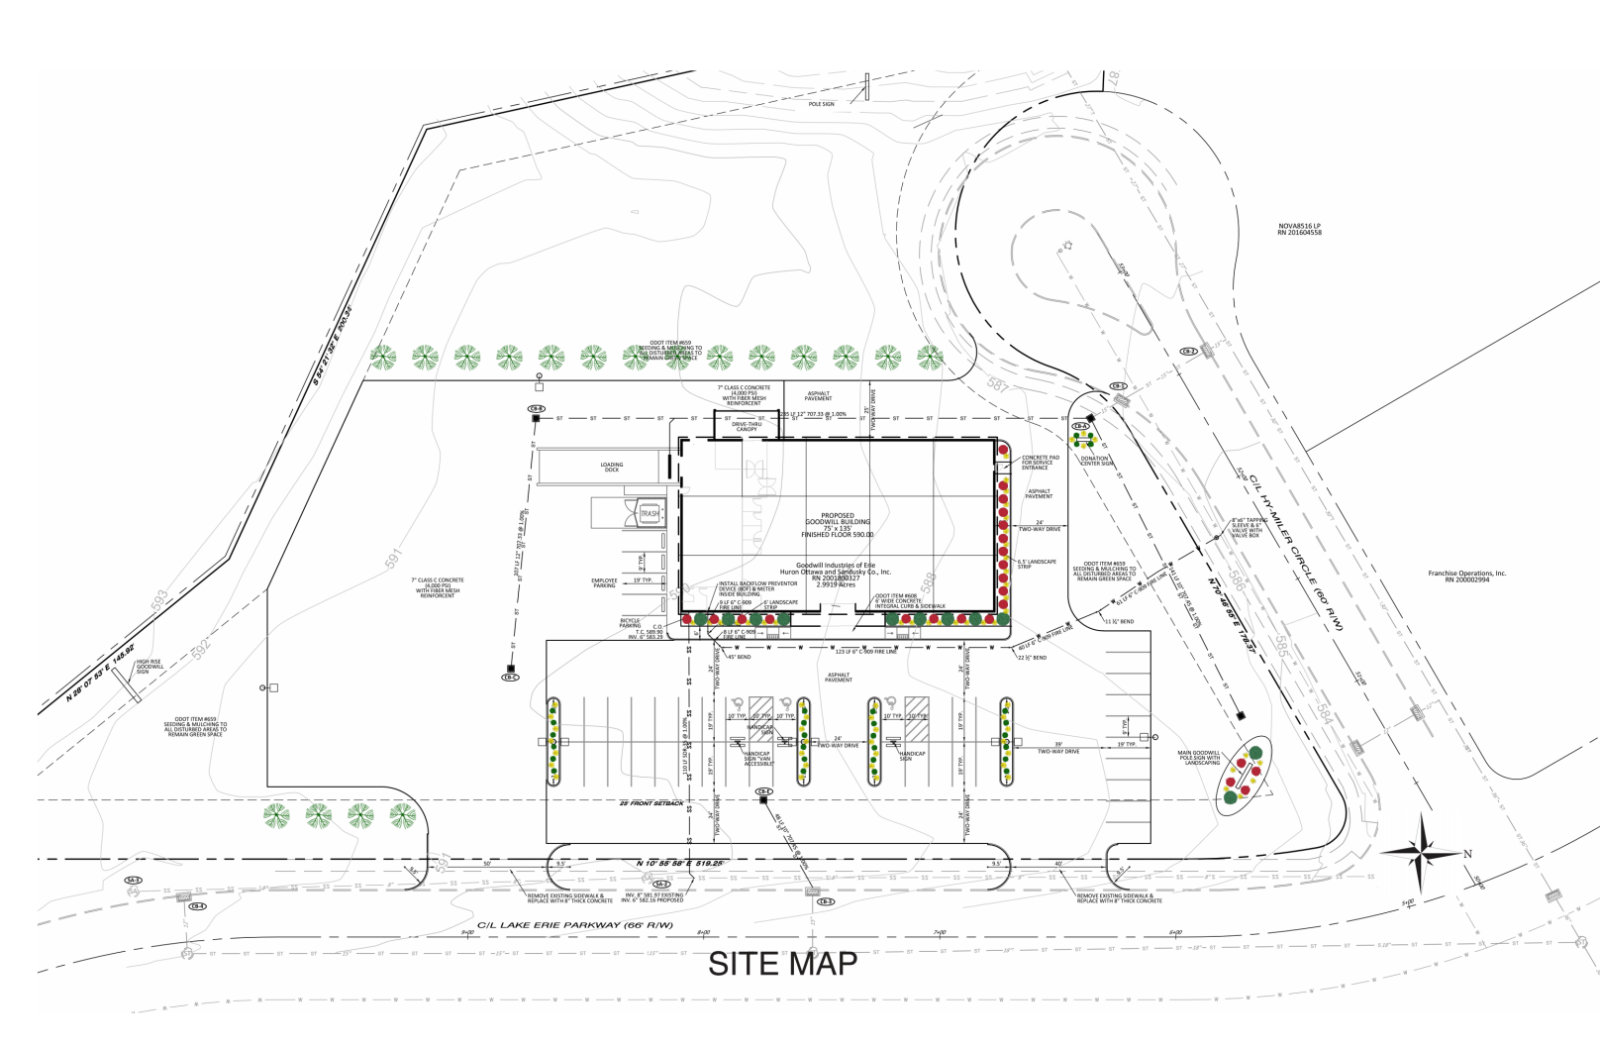 Goodwill Site Map